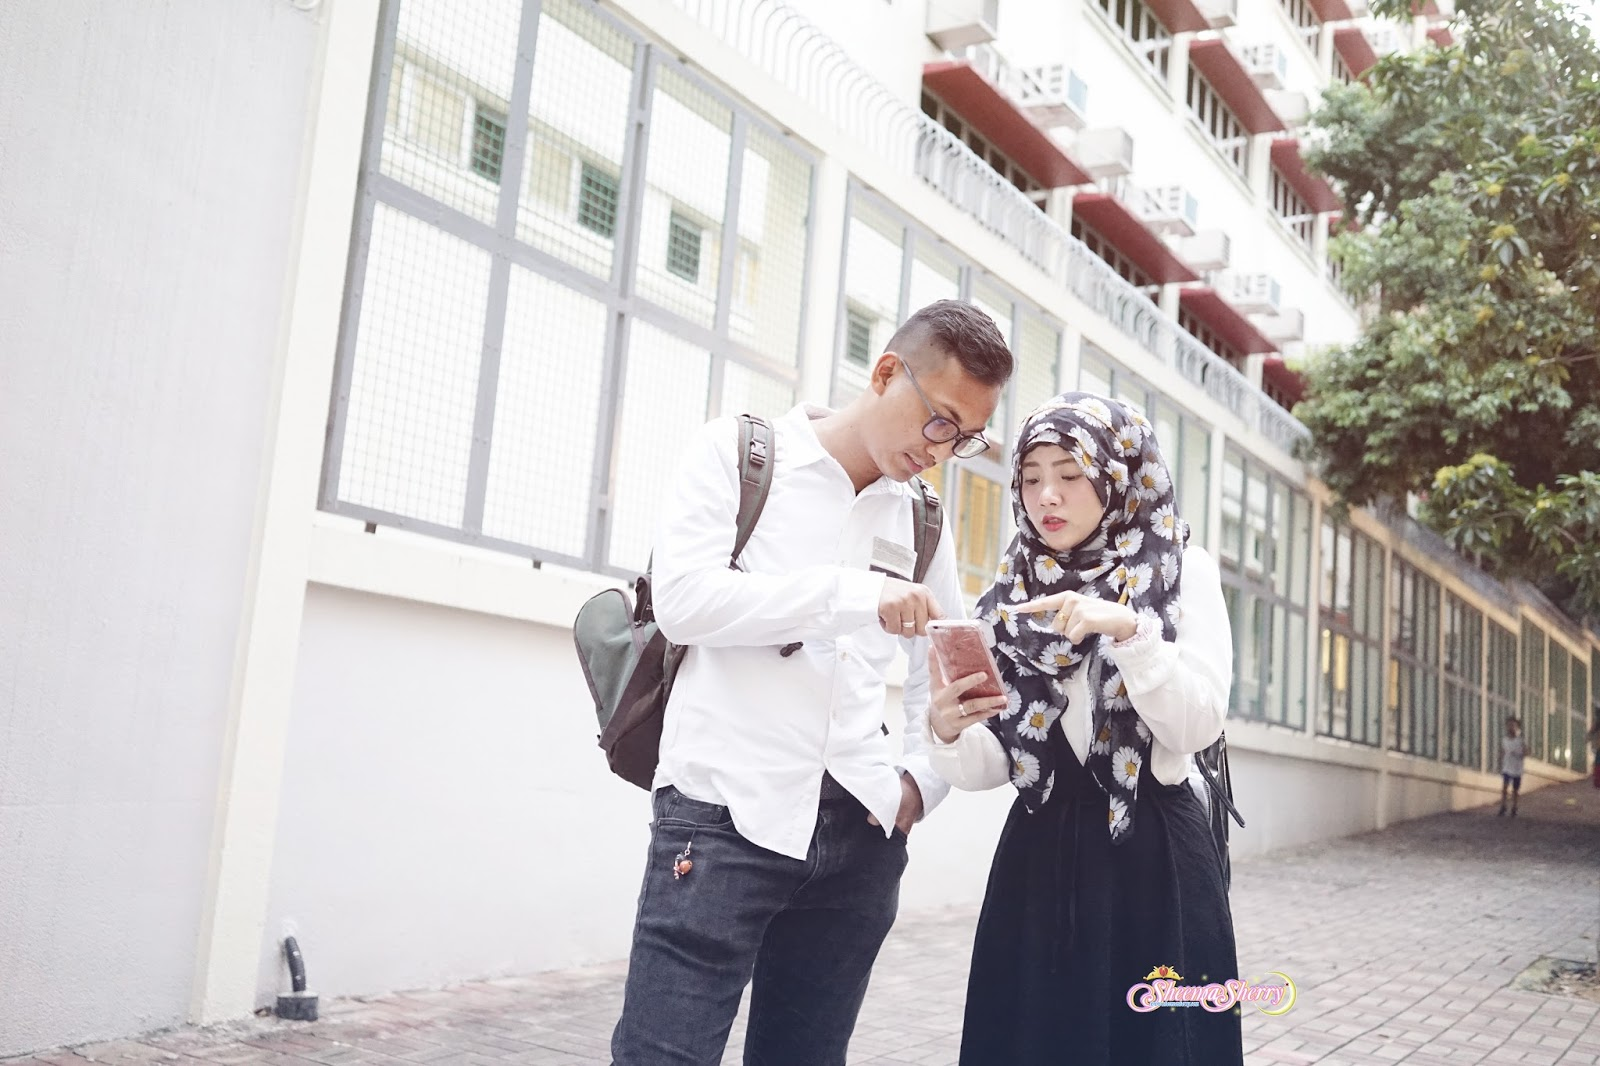 Kawaii Hijabi OOTD Hong Kong Wanchai Married Couple Hijab Cute Larme Kei Travel Travelling Muslim Halal